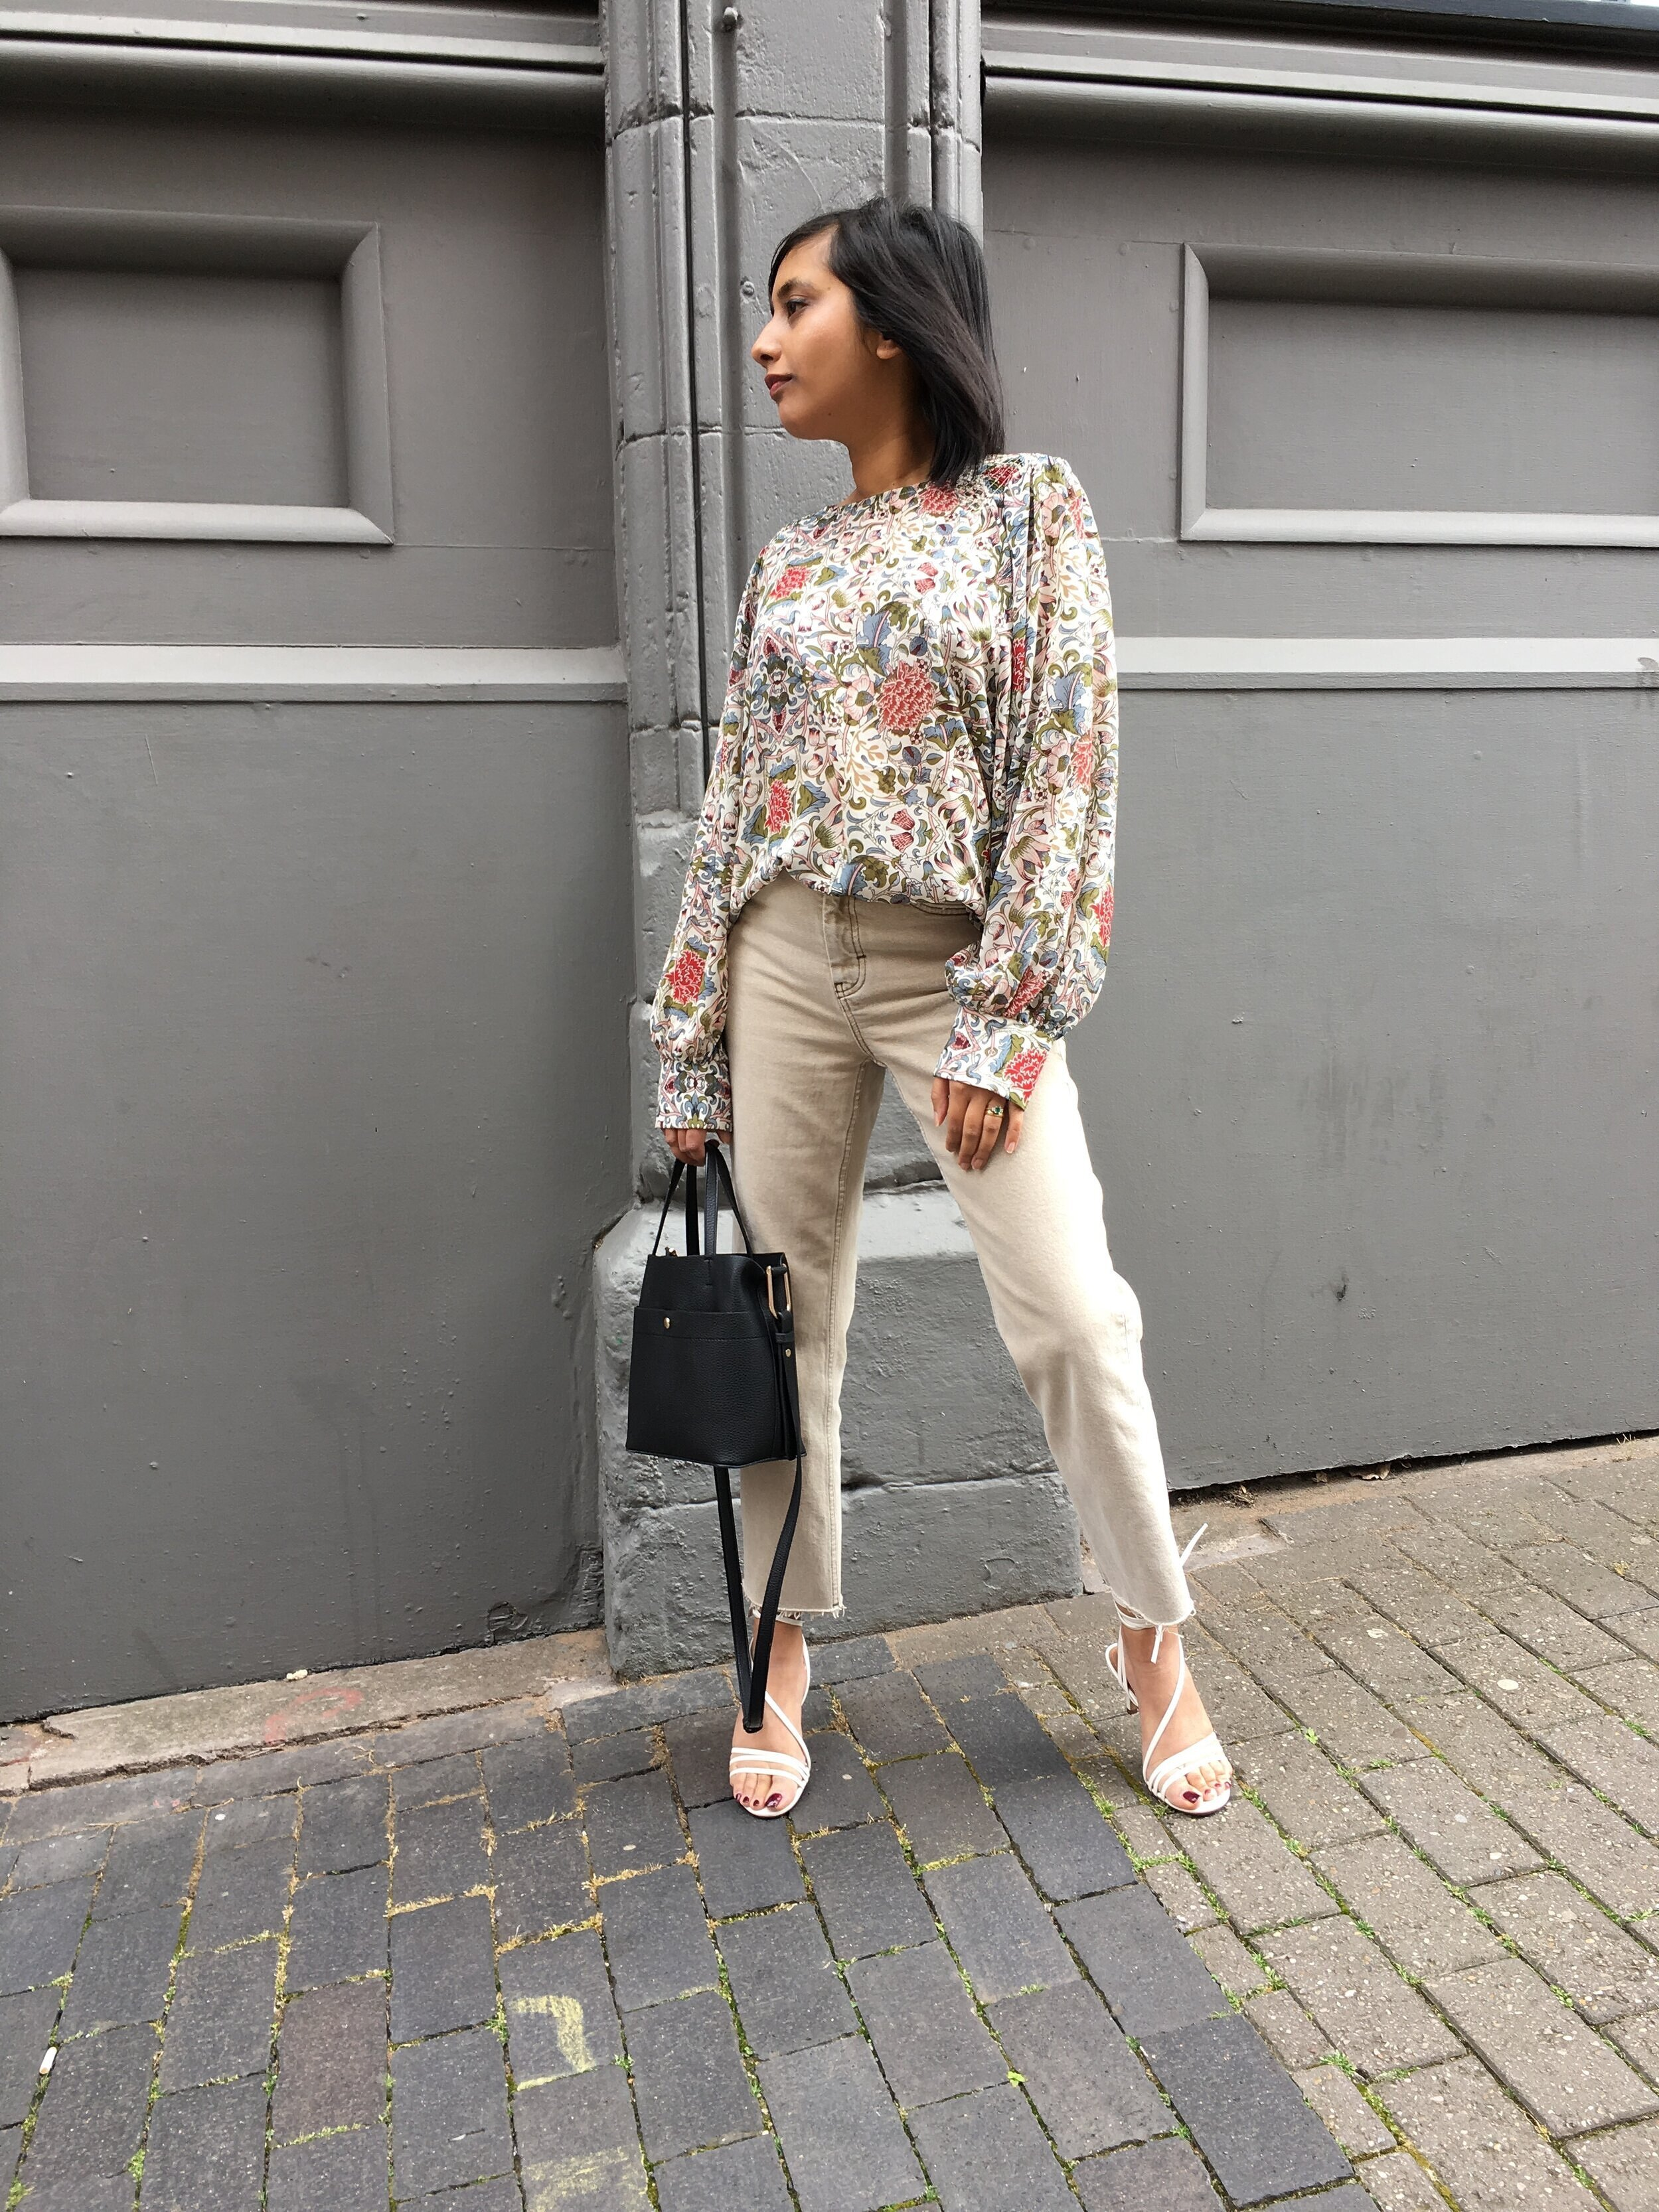 Mango Floral Print Blouse (£29.99)  ,   Topshop Sand Straight Jeans (£40.00)  , H&M Sandals - sold out but similar from & Other Stories (  here  ) and (  here  )